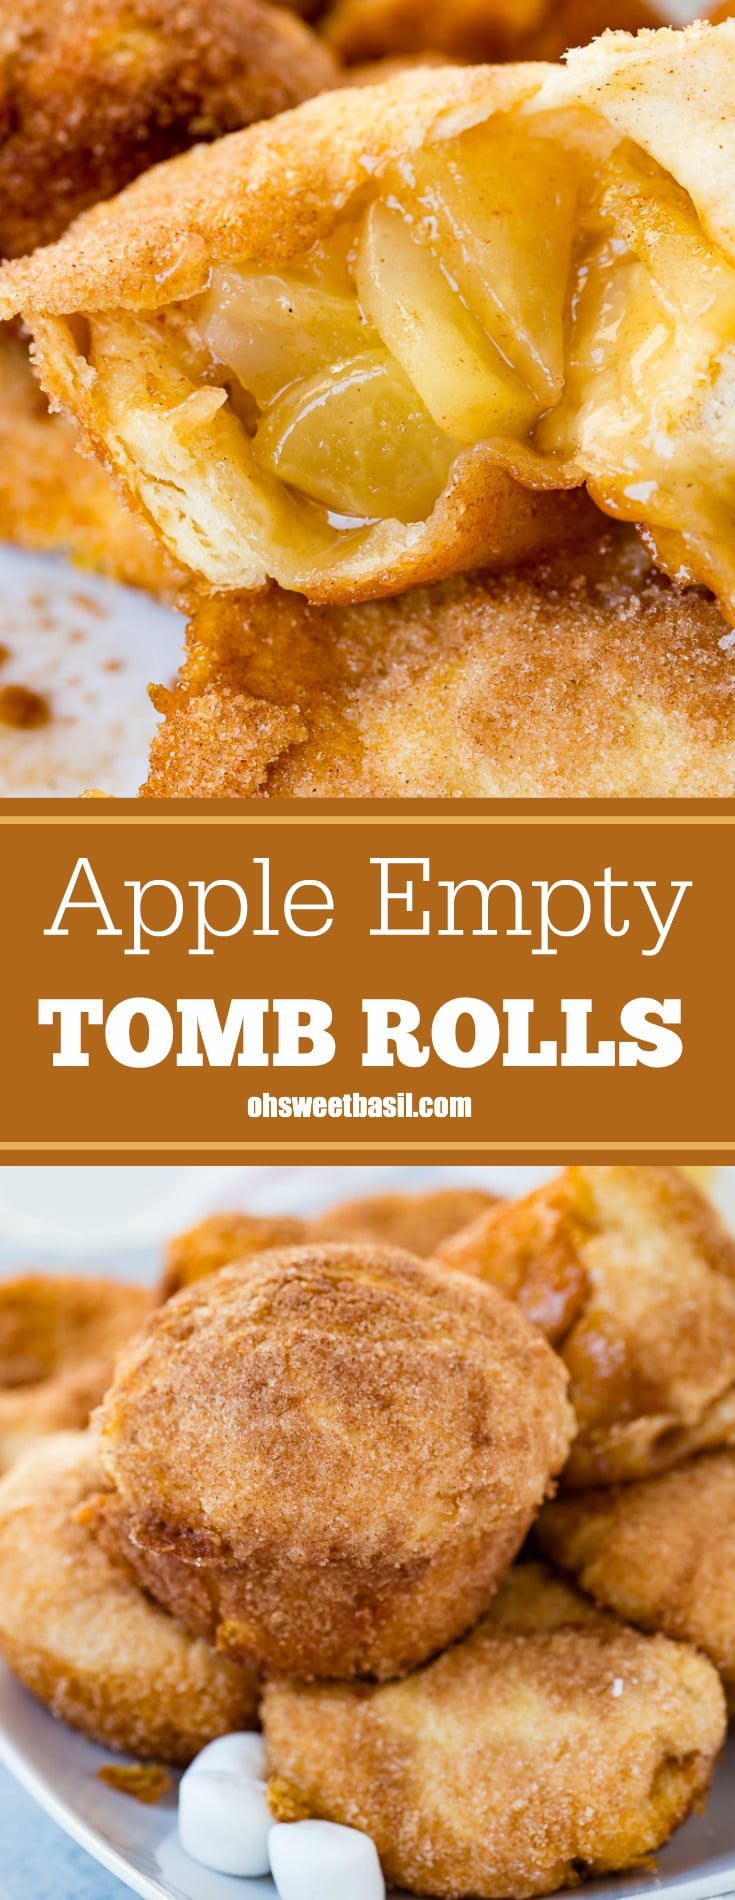 a close up of an apple pie empty tomb roll